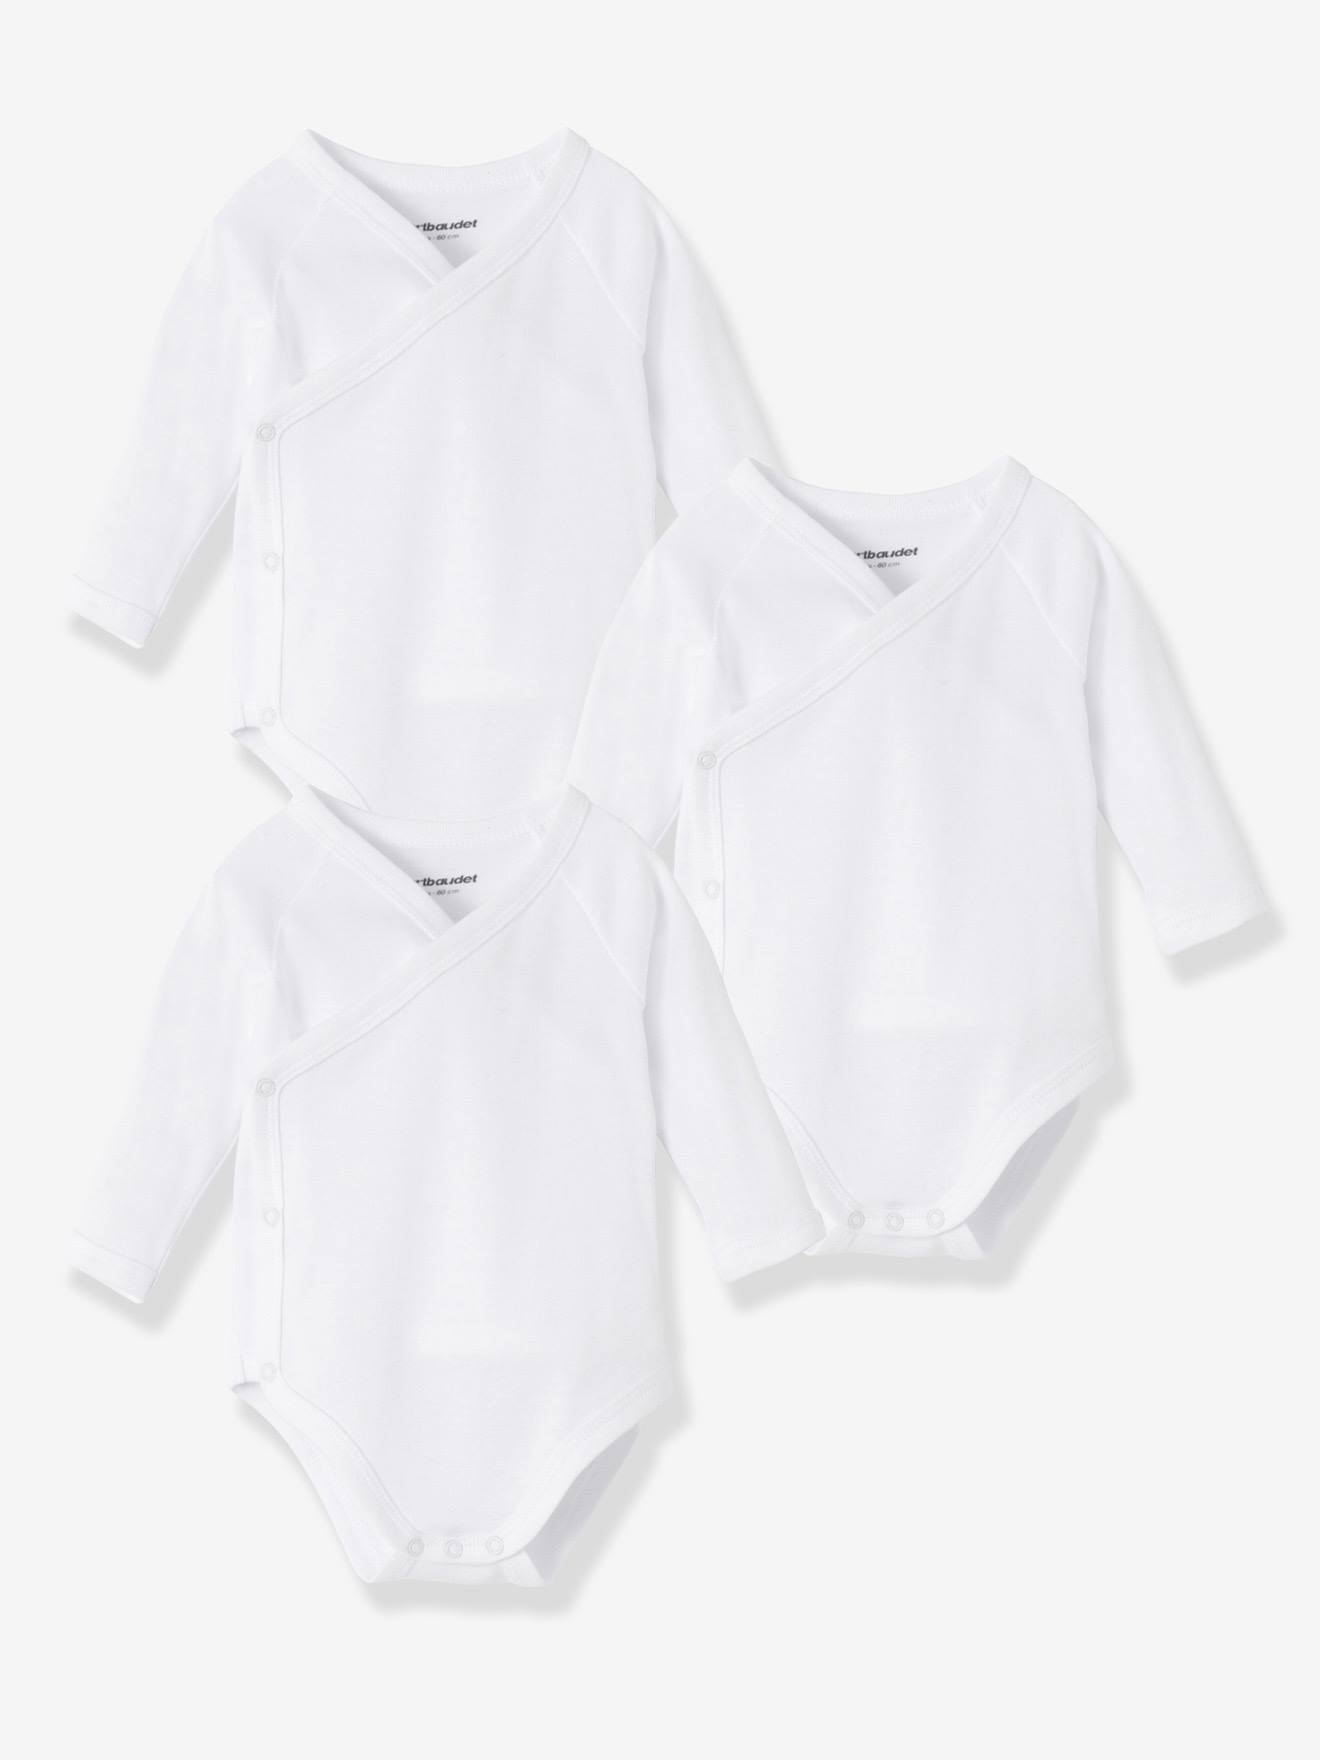 Newborn Baby Pack of 3 Long Sleeved White Bodysuits in Pure Cotton